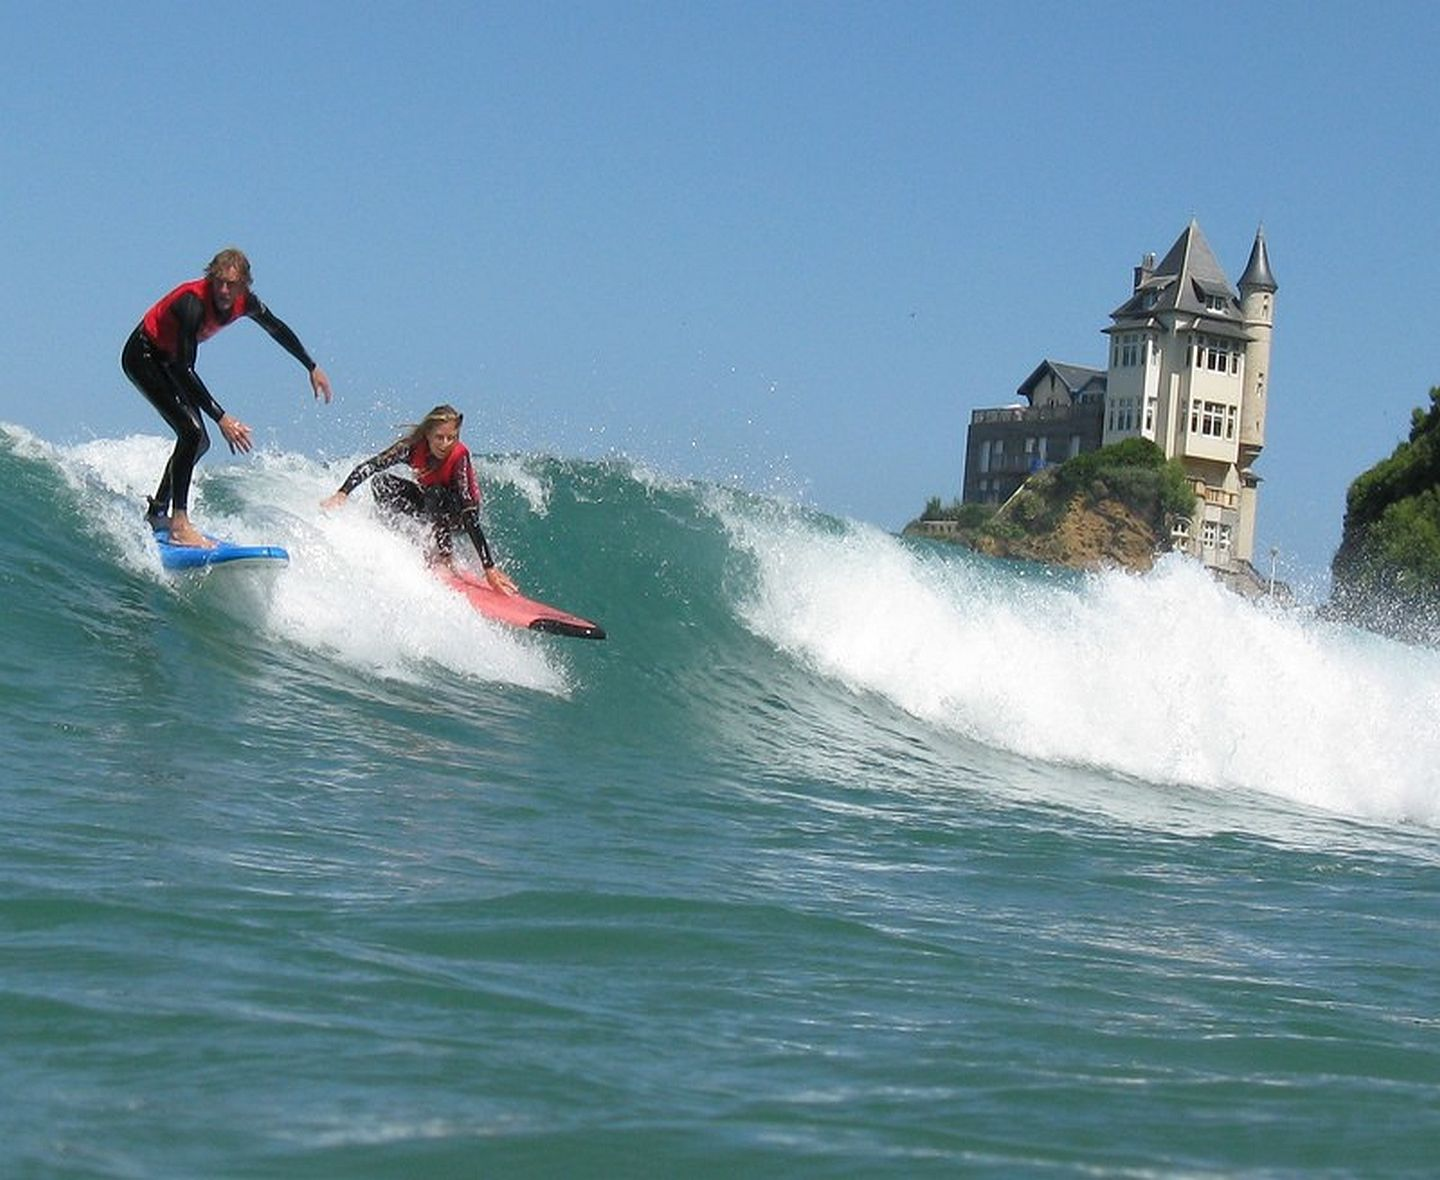 École de Surf La Vague Basque